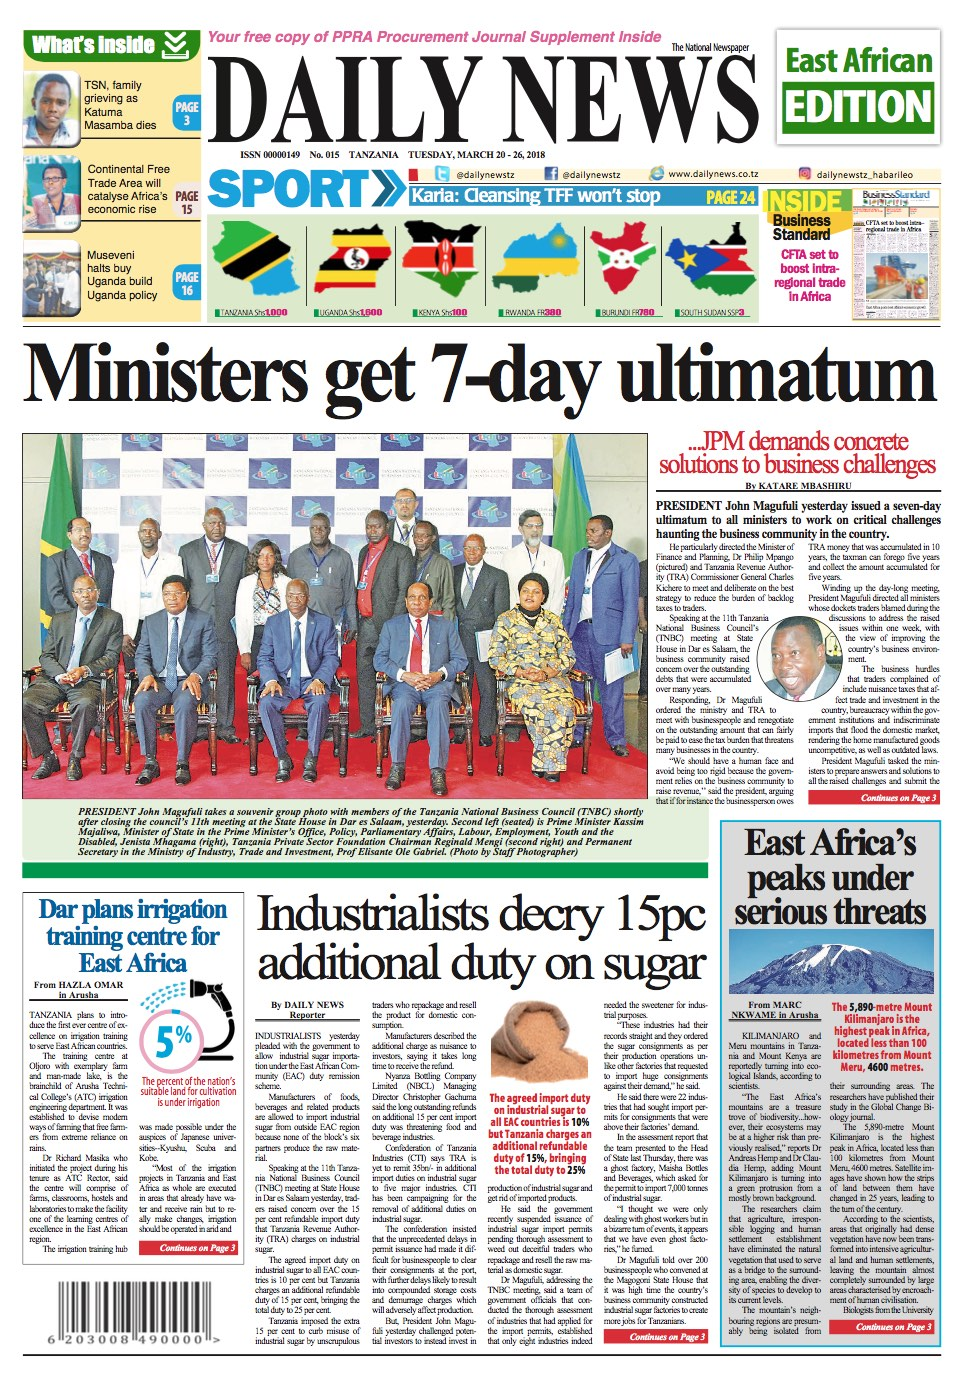 MINISTERS GET 7 DAY ULTIMATUM